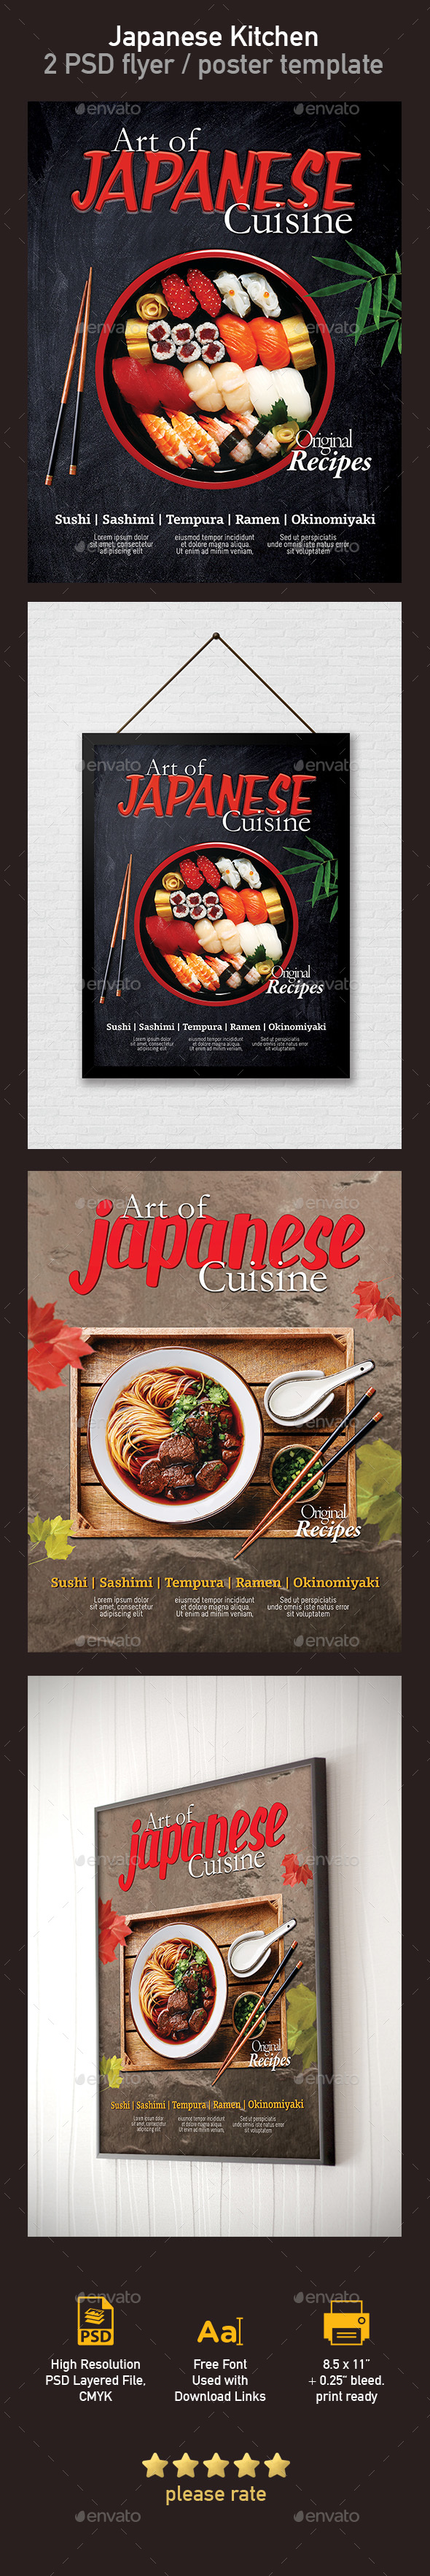 Japanese Restaurant Flyer / Poster Template - 2 PSD - Restaurant Flyers